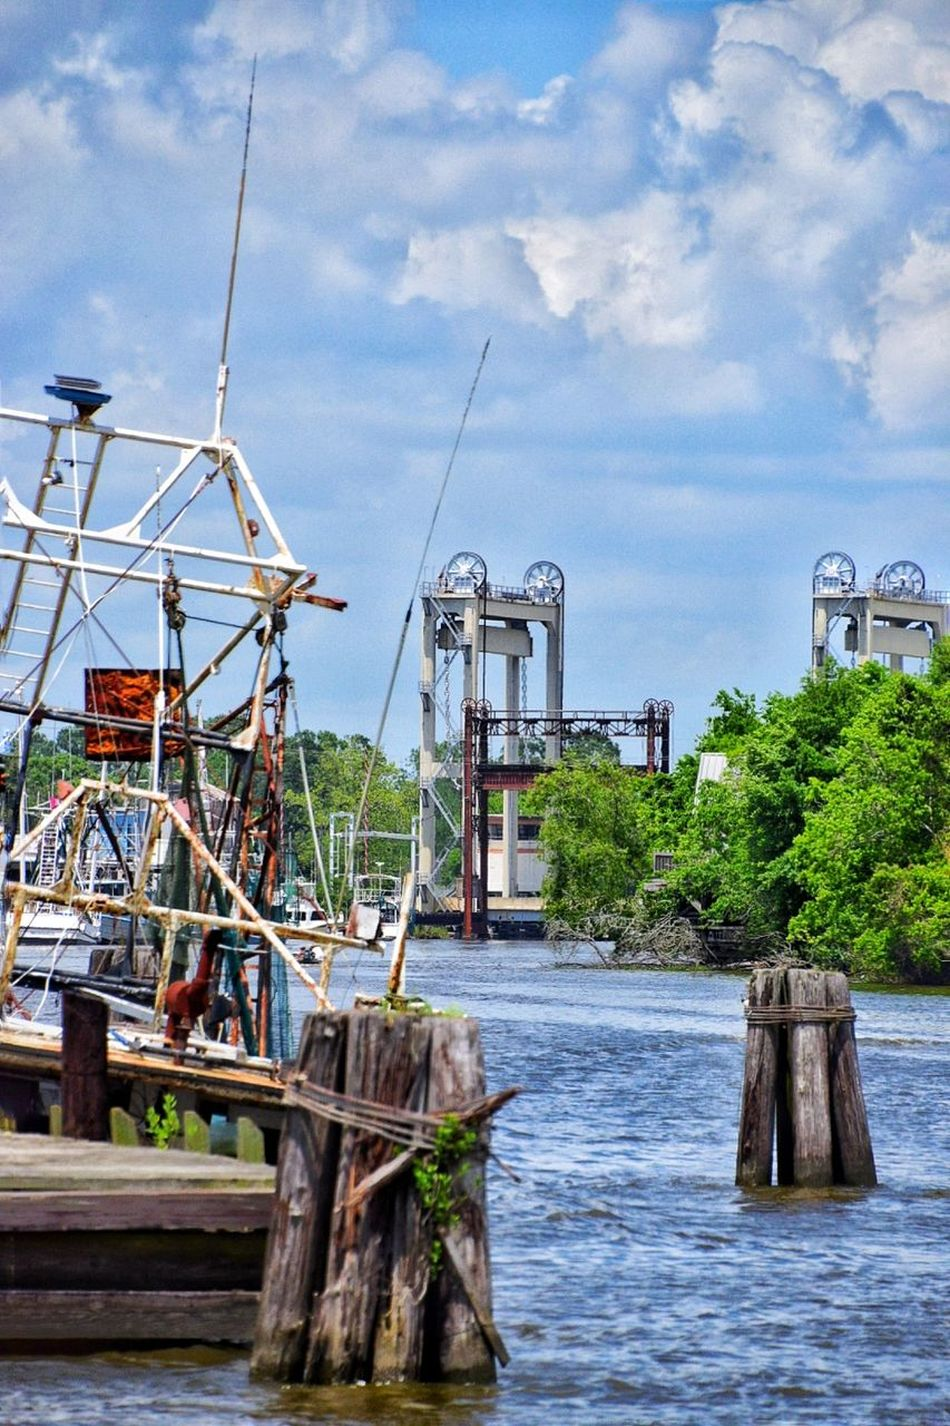 Water Outdoors Nautical Vessel Cloud - Sky Pier Built Structure No People Bayou Drawbridge  Harbor Travel Destinations Vacations Tourism Sky Sea Tranquility Beach Day Stilt House Architecture Boats Trees